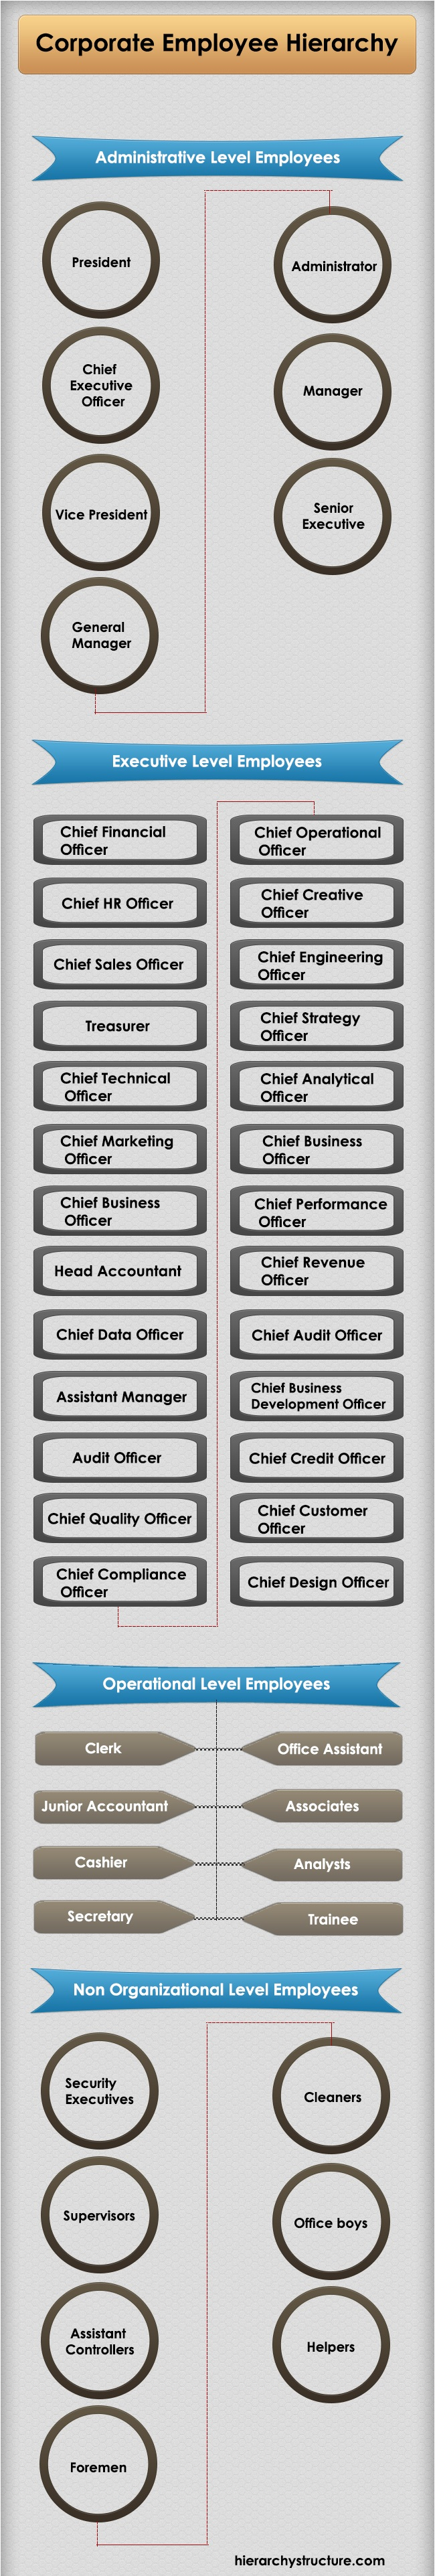 Corporate Employee Hierarchy